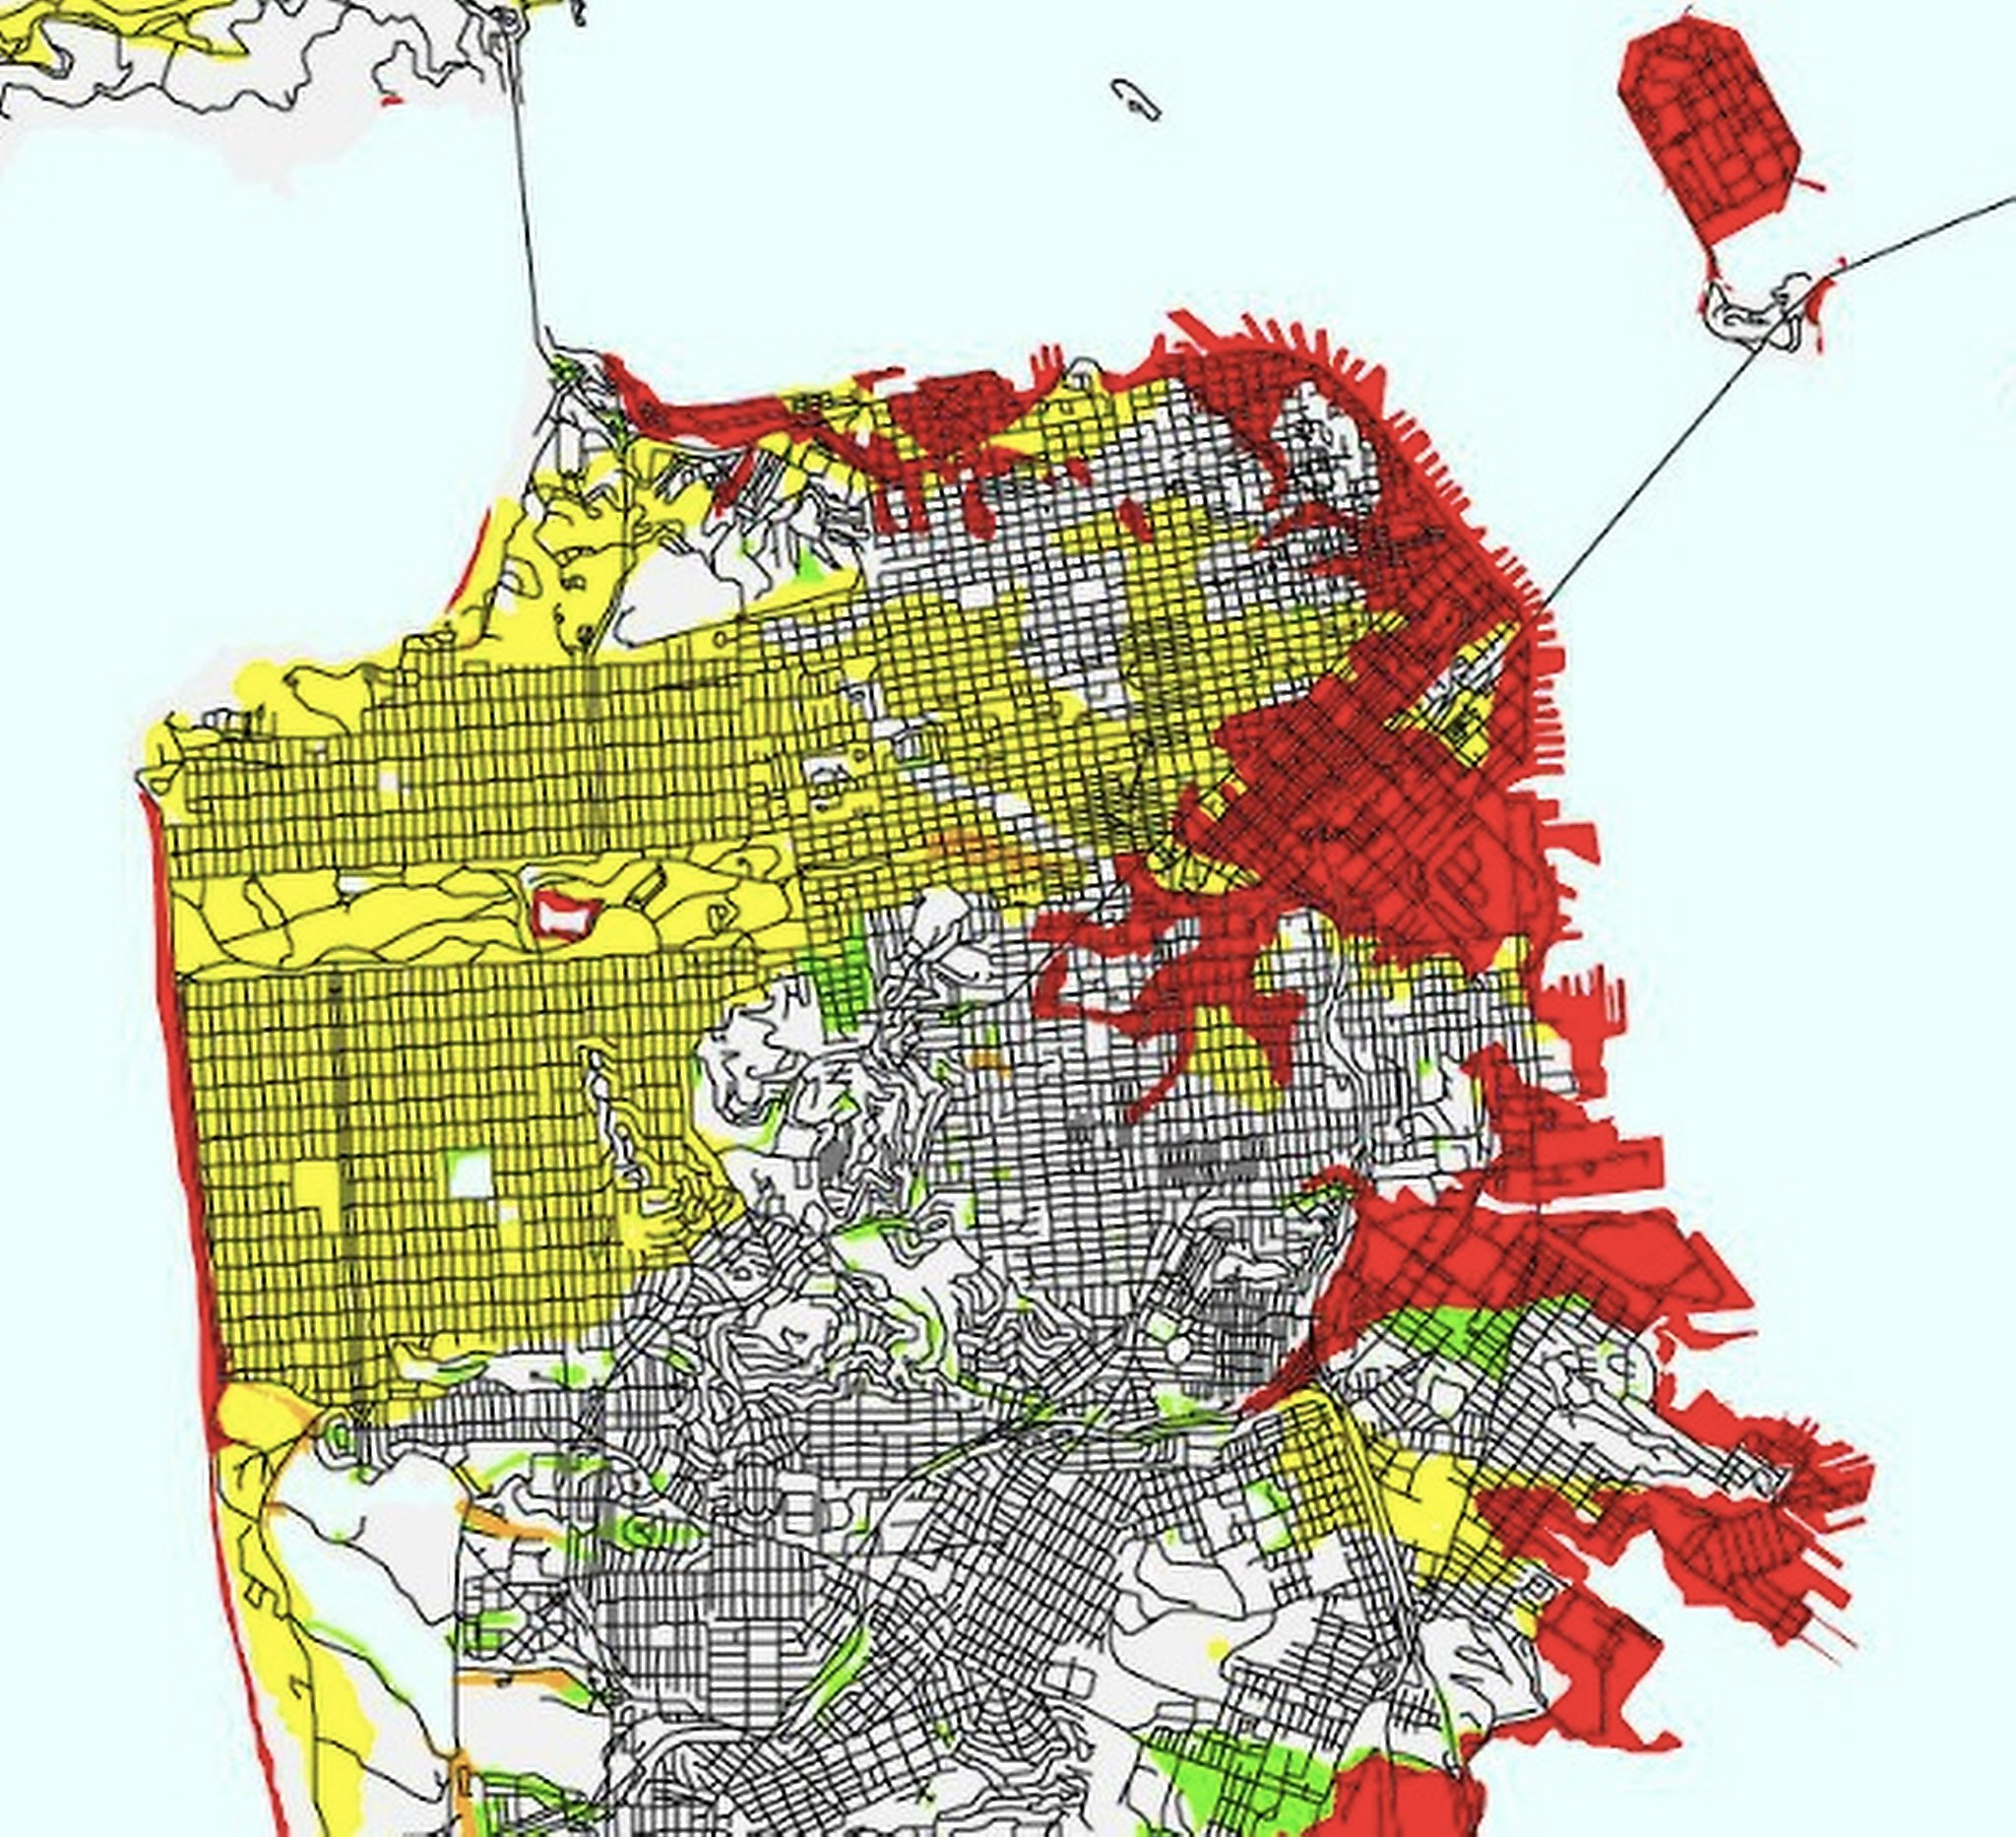 Living in a liquefaction zone — Bay Area's riskiest ... on columbia zoning map, east grand rapids zoning map, merced zoning map, hamburg zoning map, los angeles city zoning map, saint petersburg zoning map, lawrence zoning map, geneva zoning map, ithaca zoning map, kingston zoning map, orange county zoning map, davenport zoning map, fargo zoning map, sitka zoning map, pennsylvania zoning map, jackson zoning map, hartford zoning map, aspen zoning map, illinois zoning map, los angles zoning map,